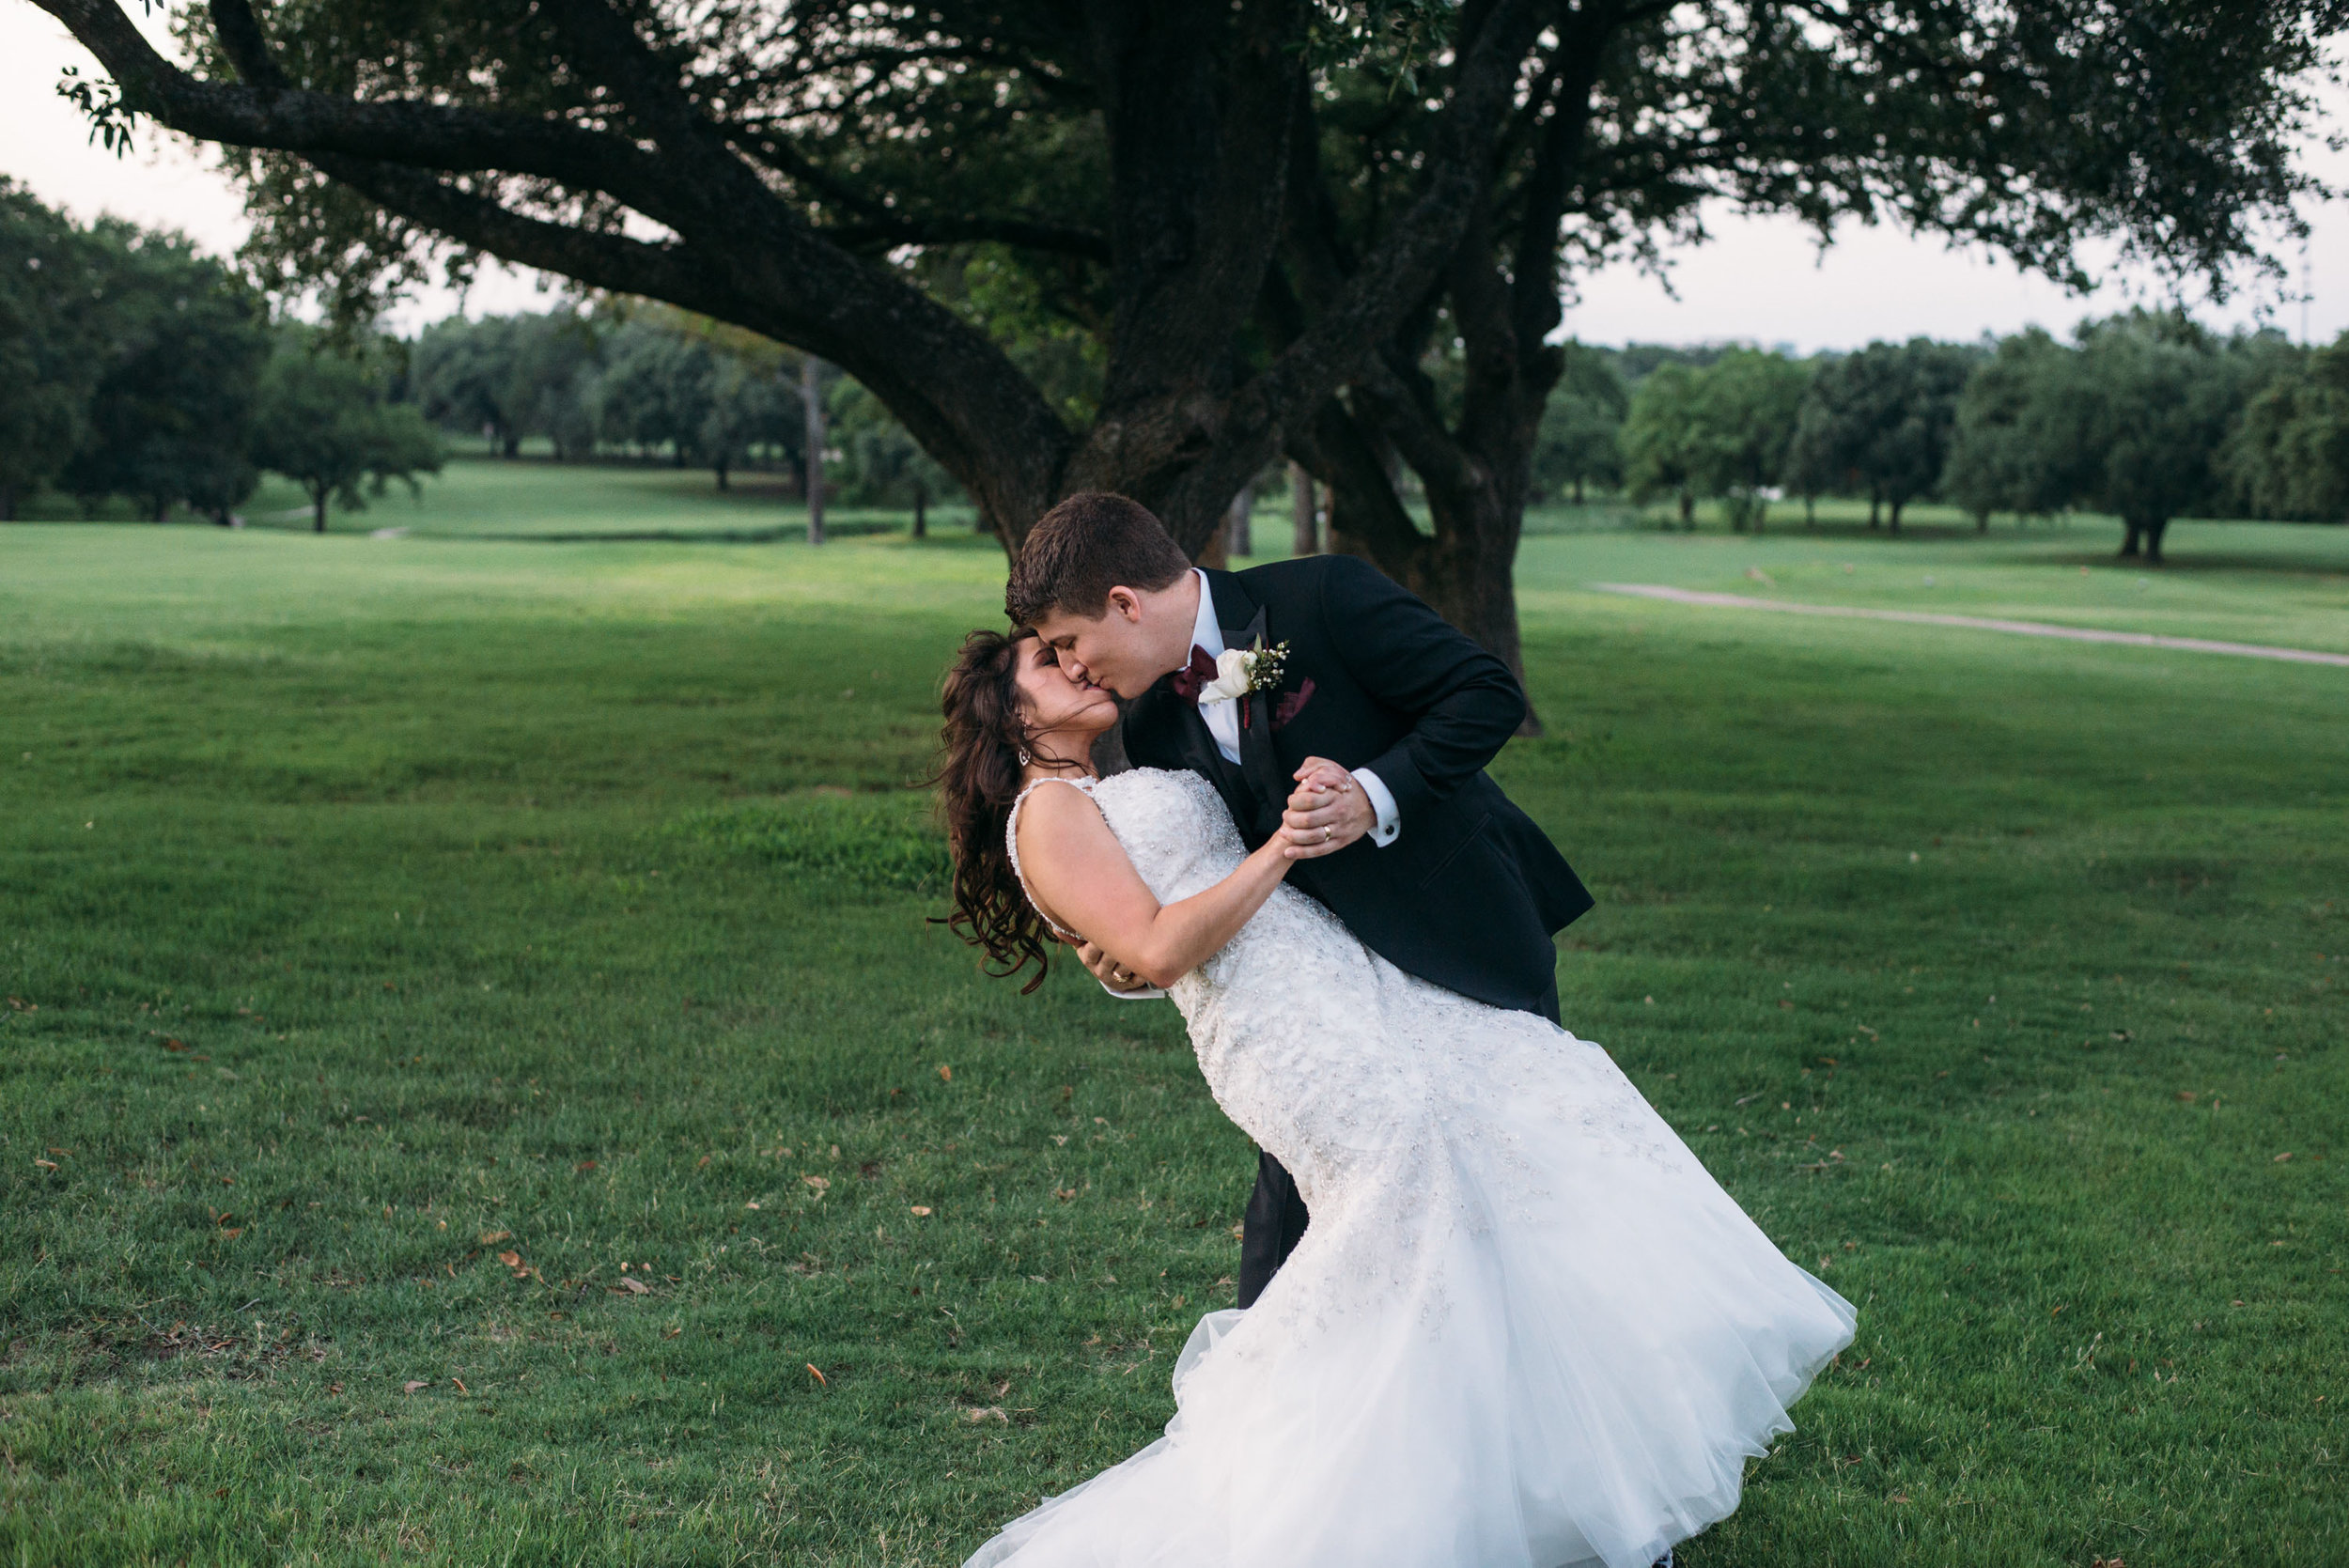 PhillipsEventCenter-AggieWedding-CollegeStationPhotographer_49.jpg